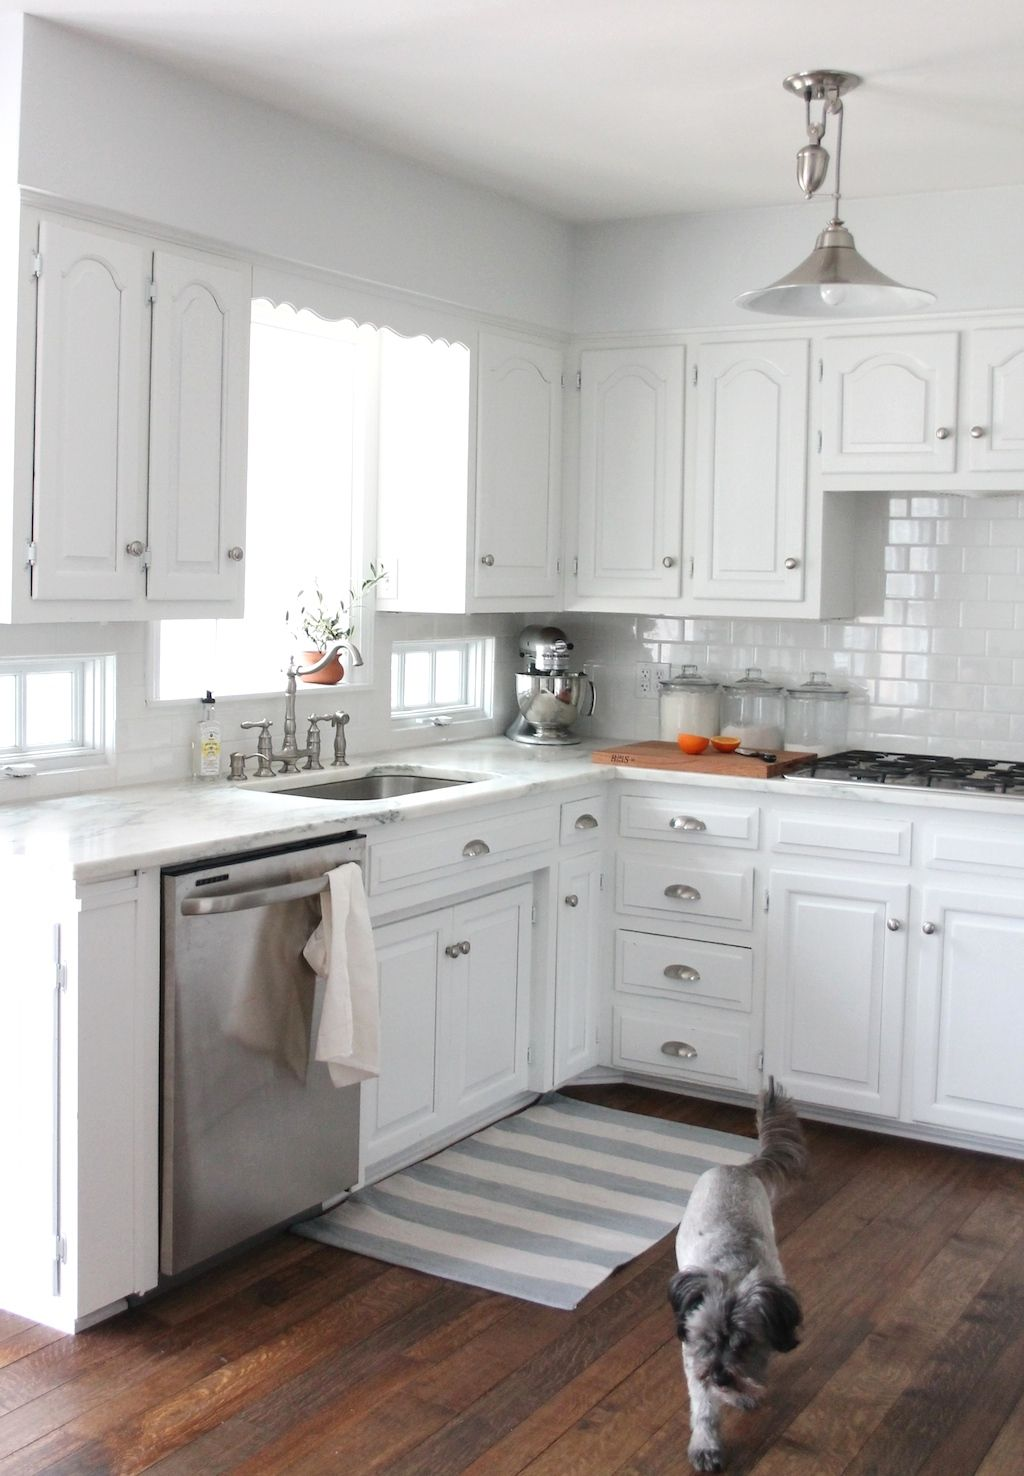 We did it our kitchen remodel easy diy projects and for Small white kitchen ideas